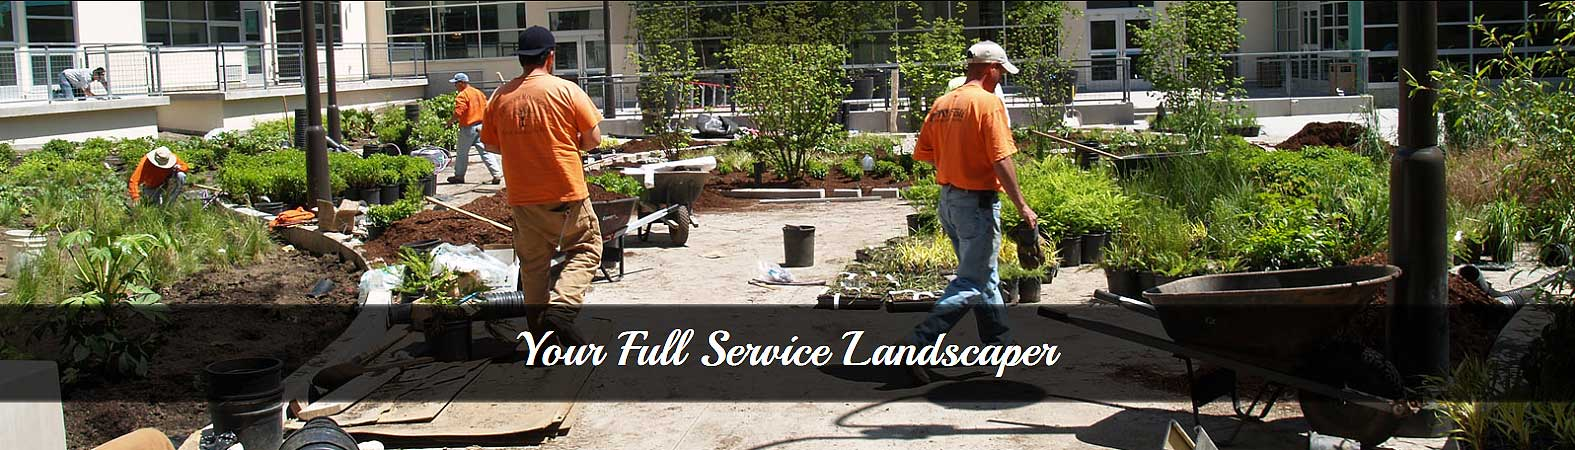 Your Full Service Landscaper